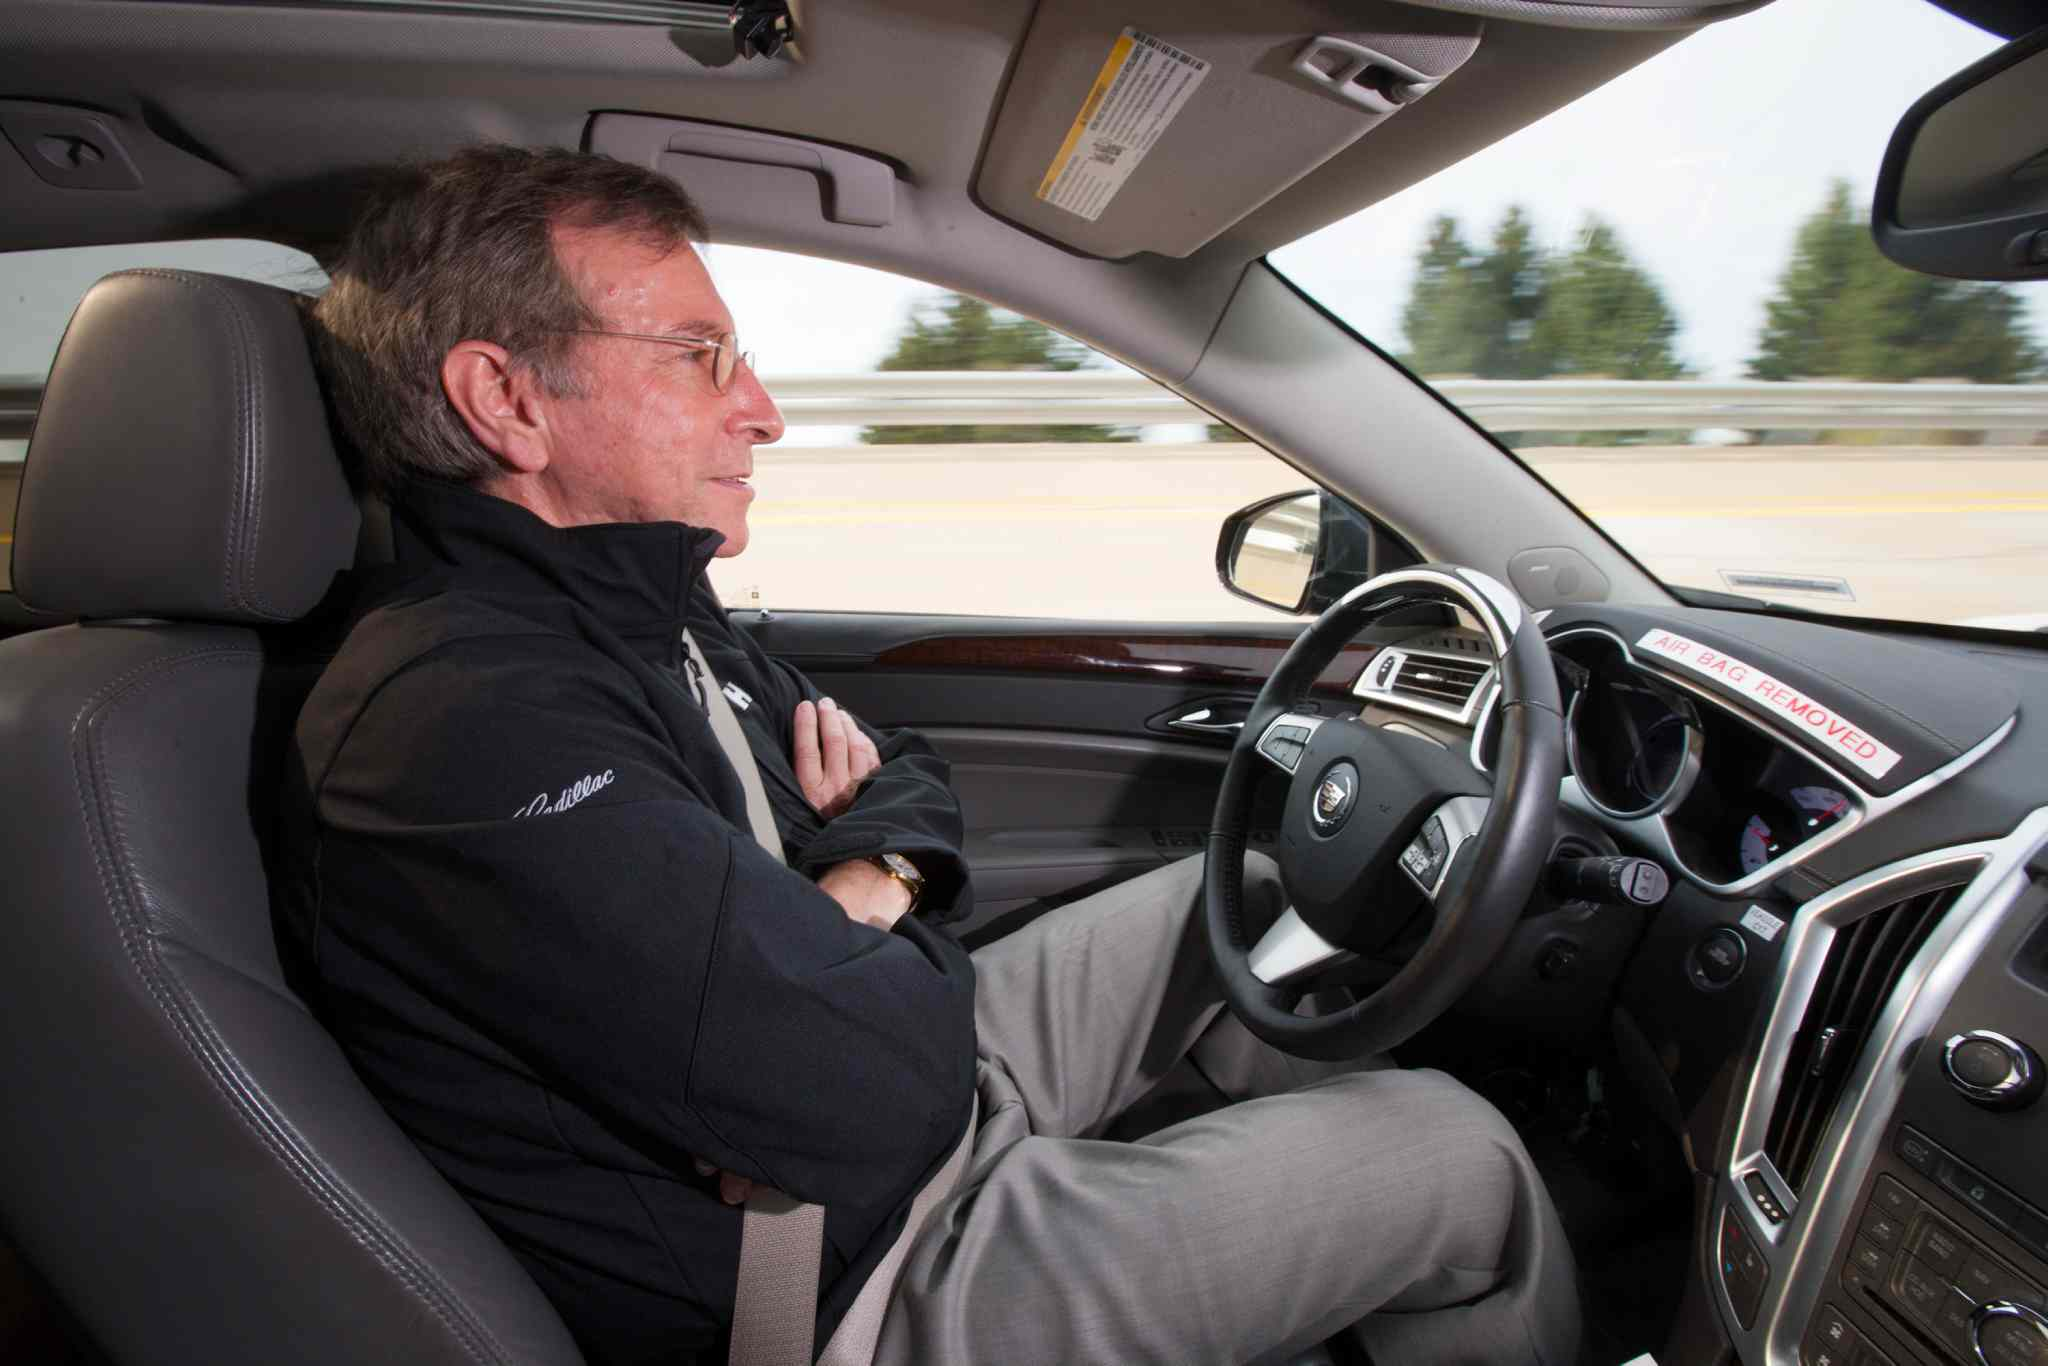 It's a driverless world -- commuters can get work done from behind the wheel. Or maybe reach the next level on their Candy Crush app.